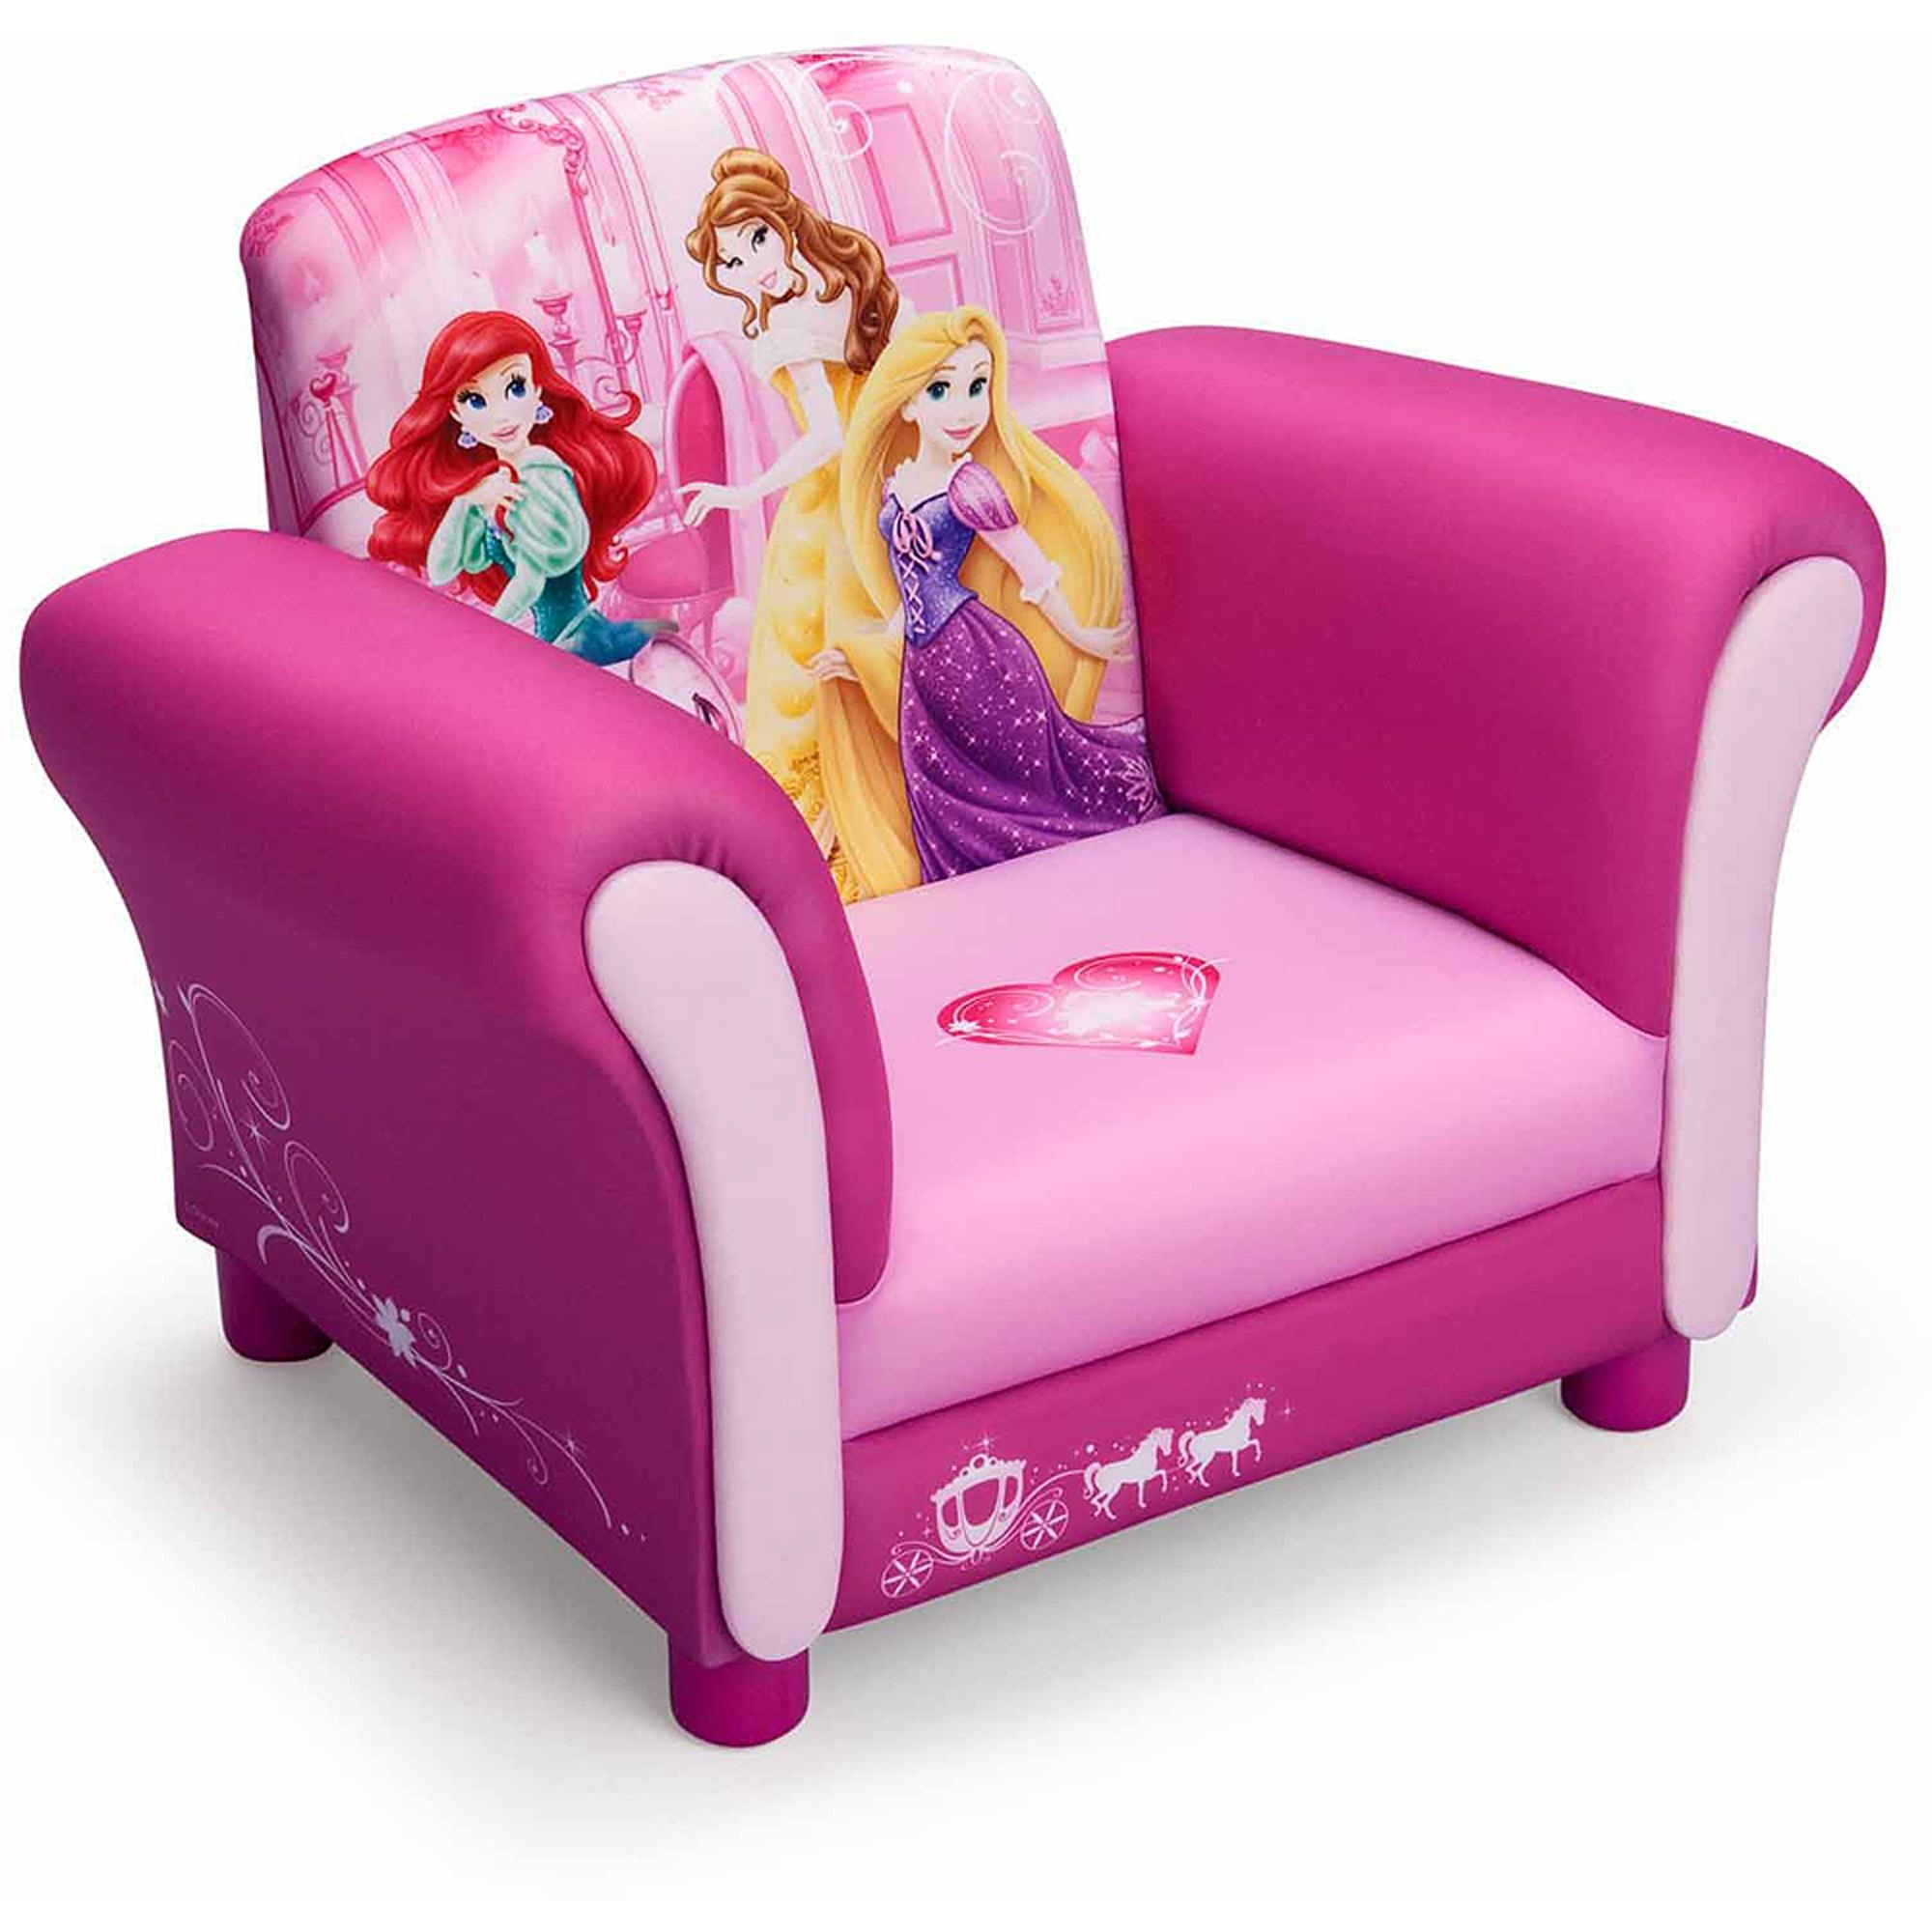 Princess Chairs For Toddlers 20 Best Collection Of Disney Princess Couches Sofa Ideas